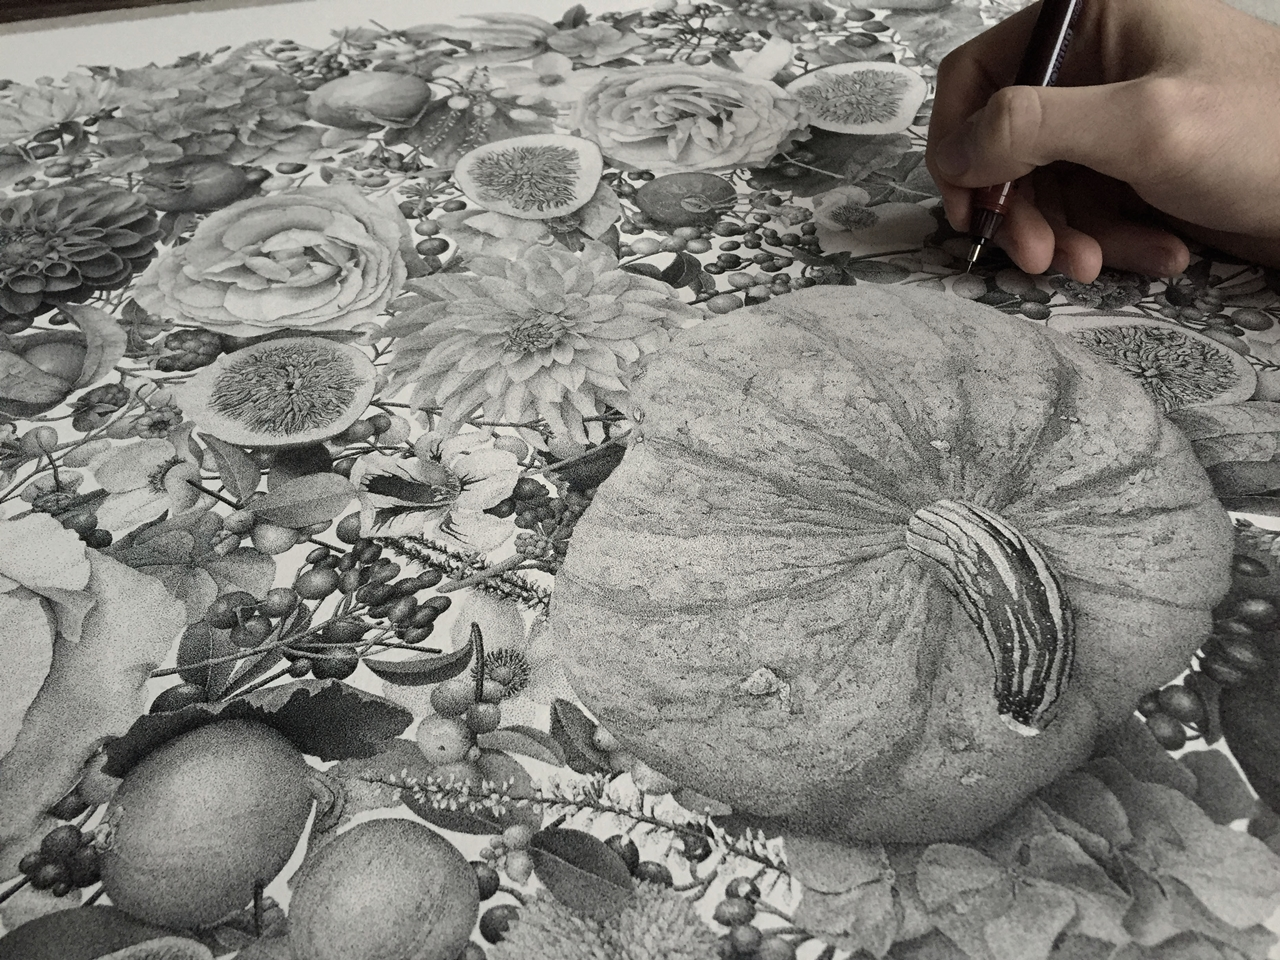 7-million-dots-and-370-hours-later-i-present-my-piece-called-autumn__13